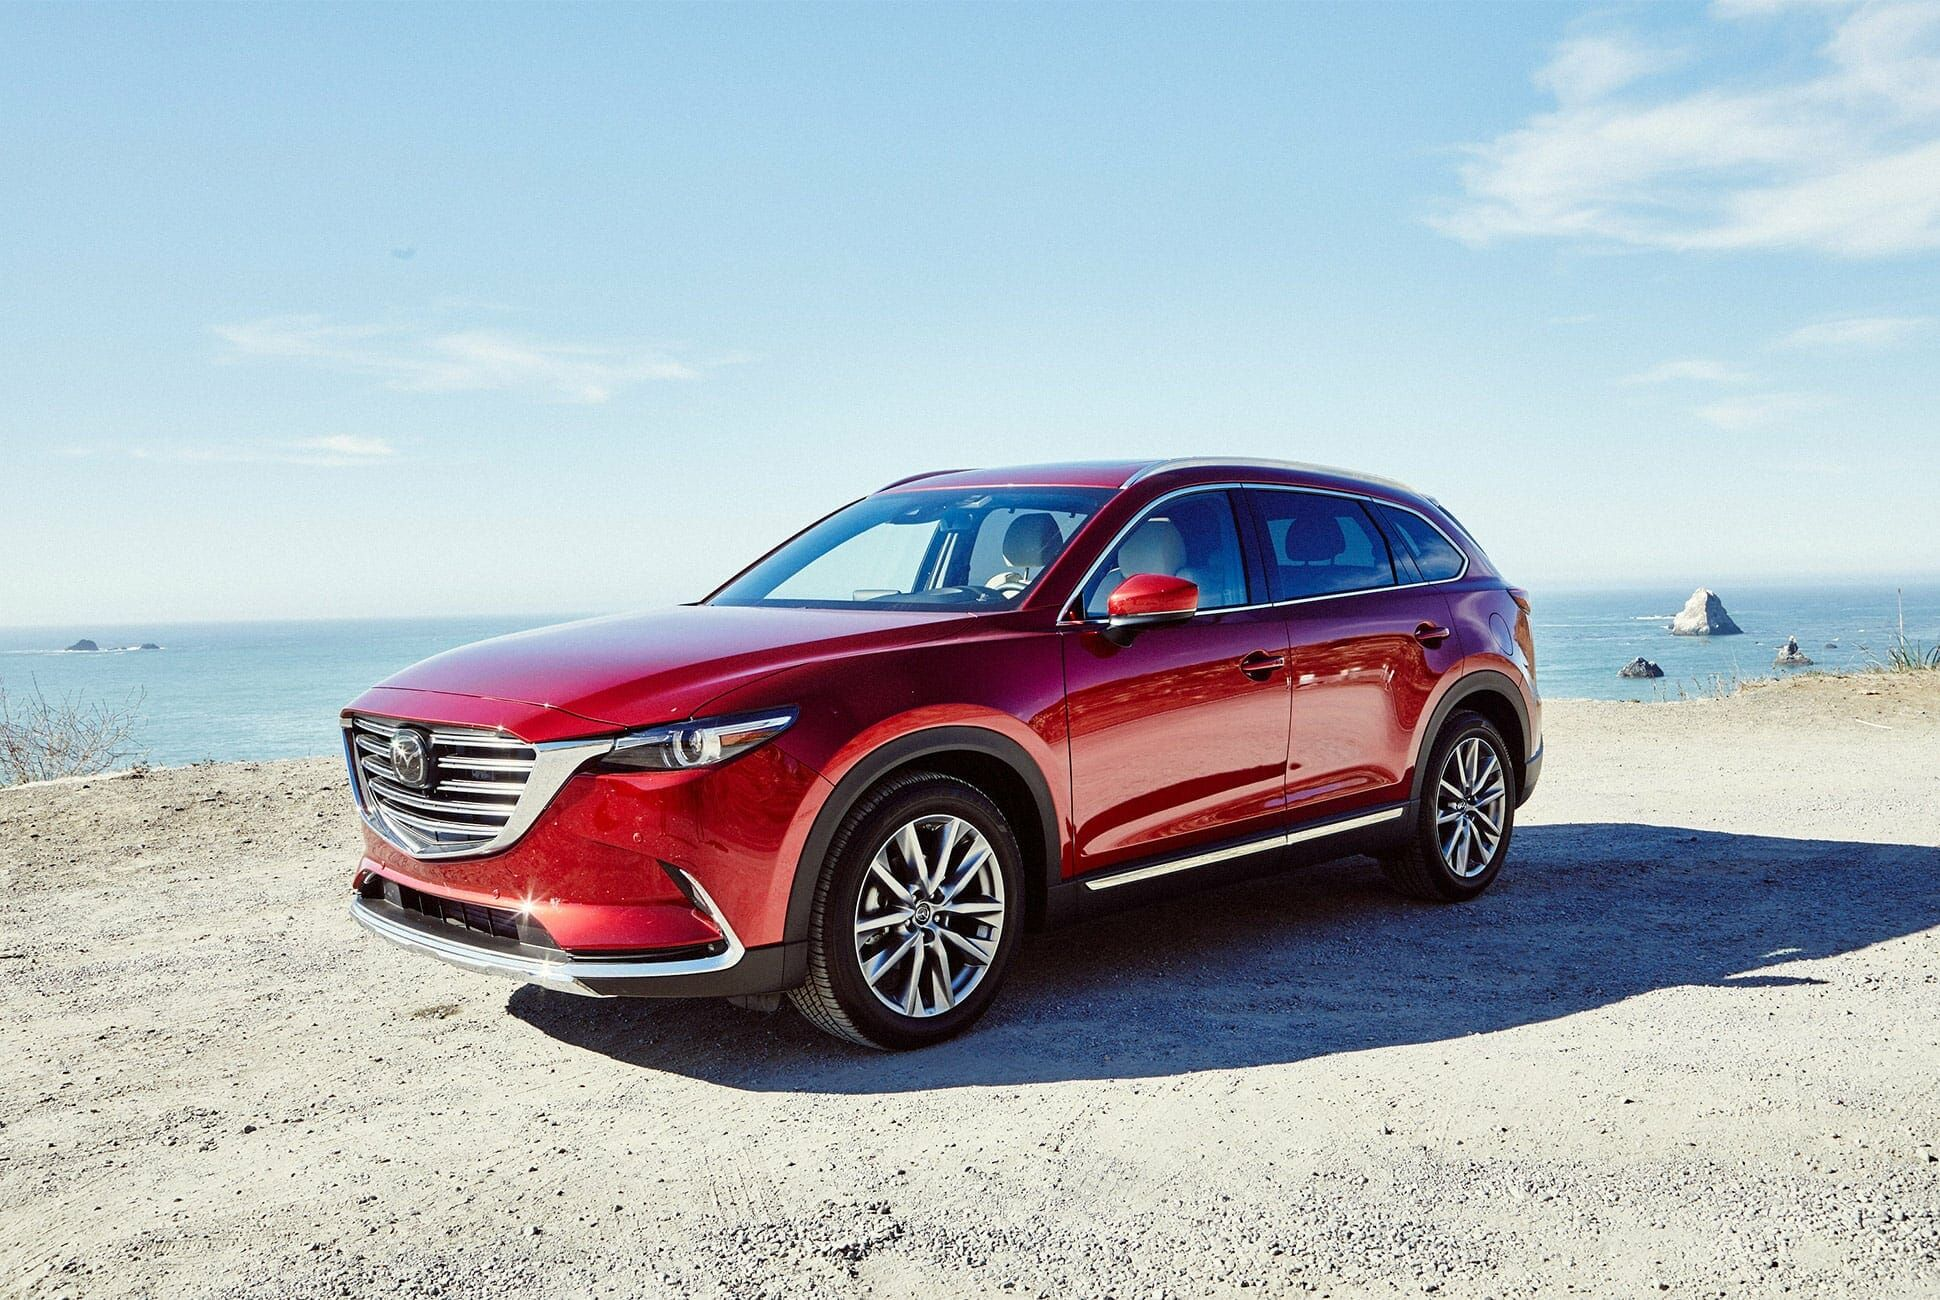 2019 Mazda CX-9 Review: The Best SUV I've Ever Driven • Gear